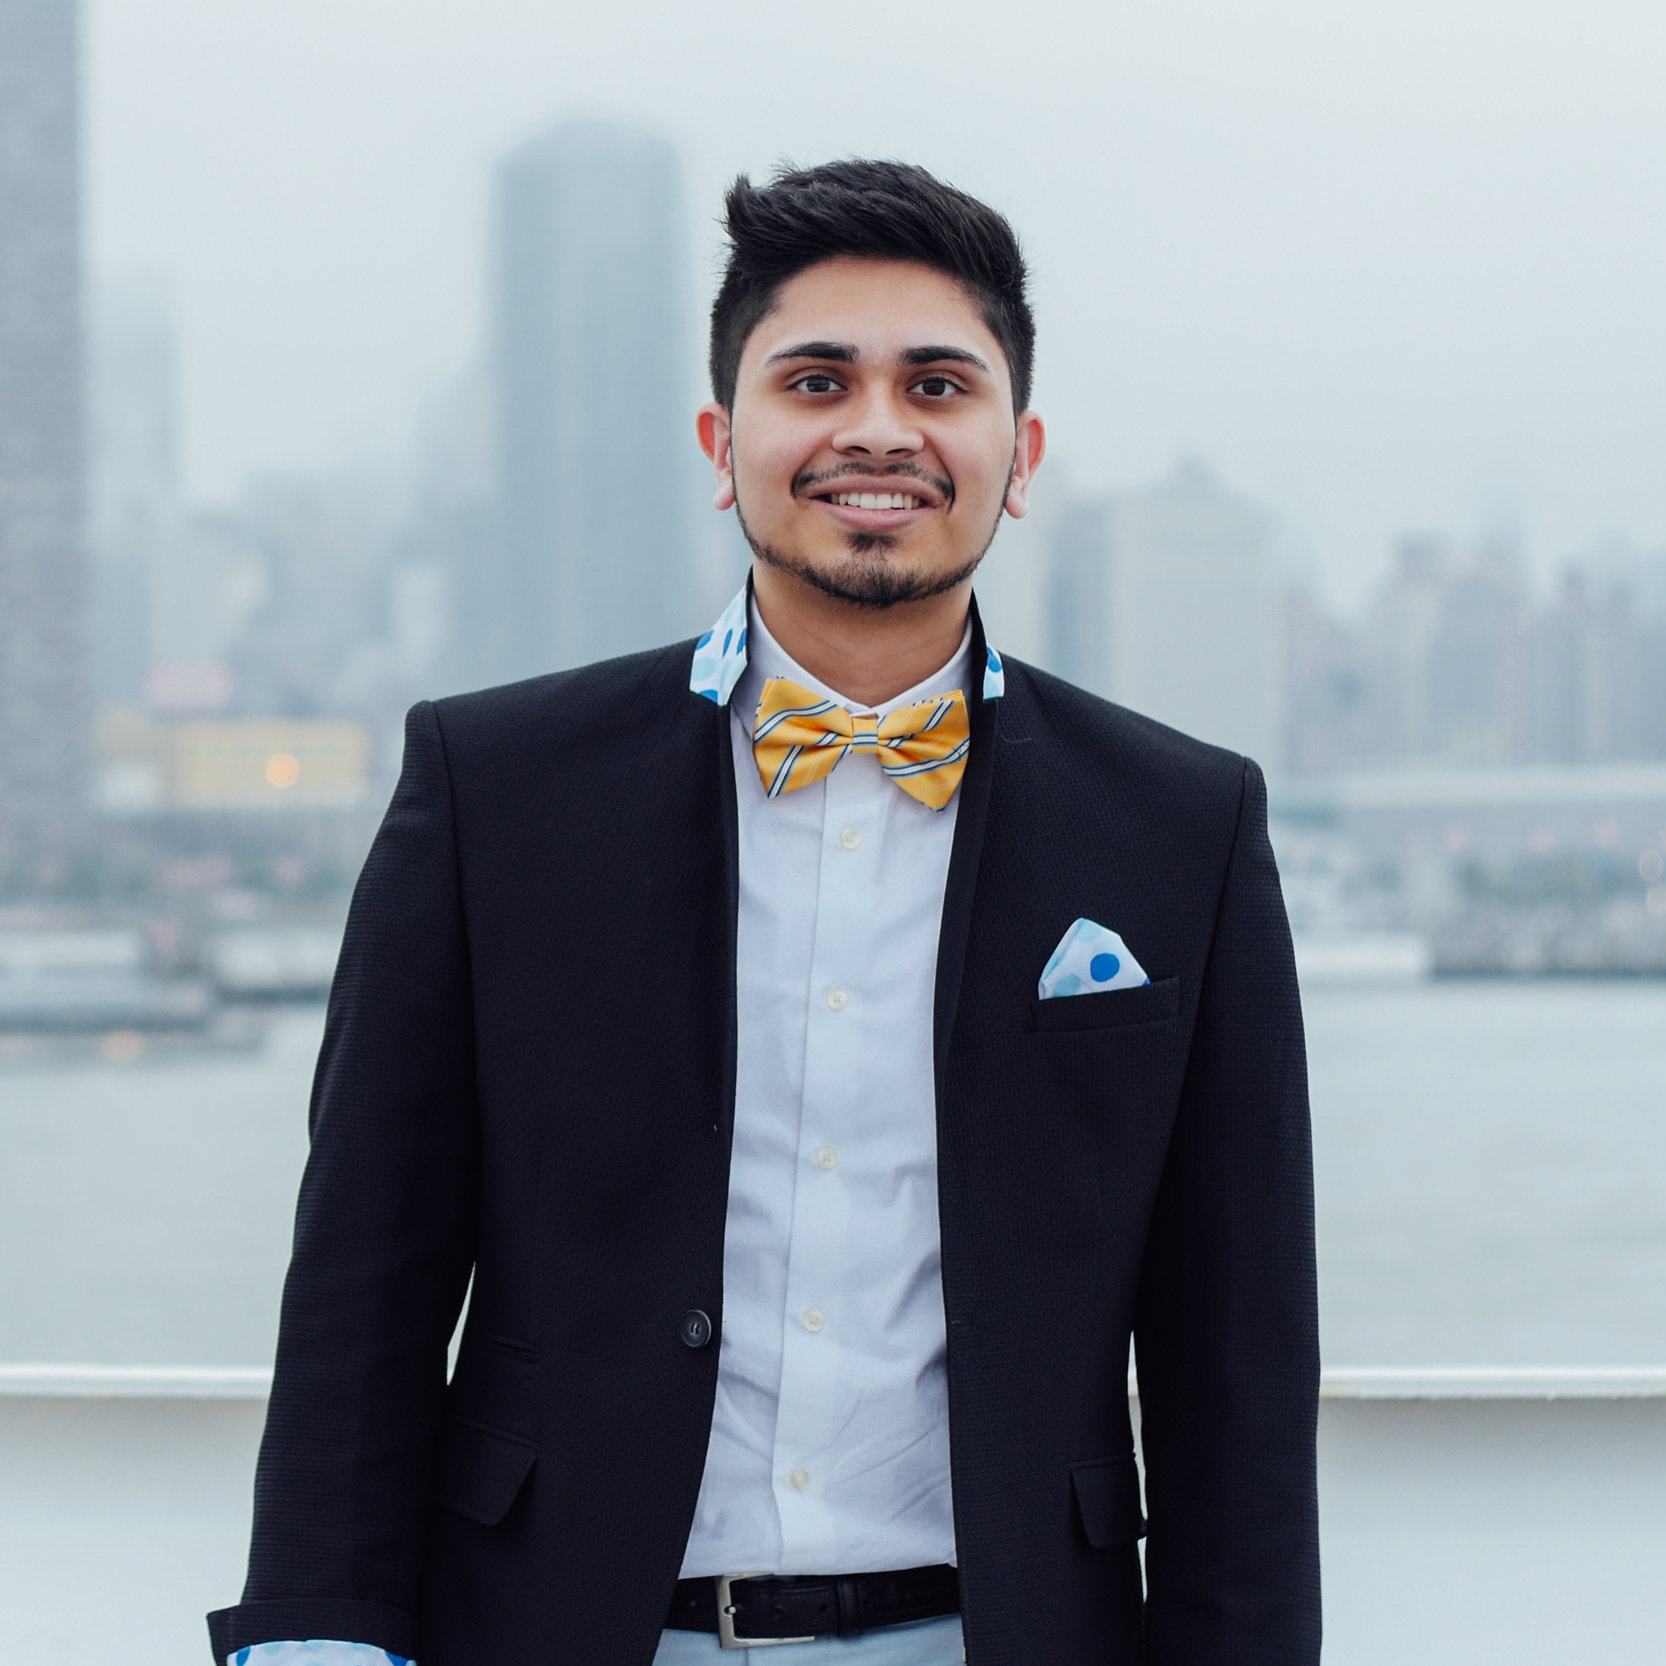 DJBK is a disc jockey by trade and entertainer at heart. He is the premier Indian wedding DJ in Philadelphia.